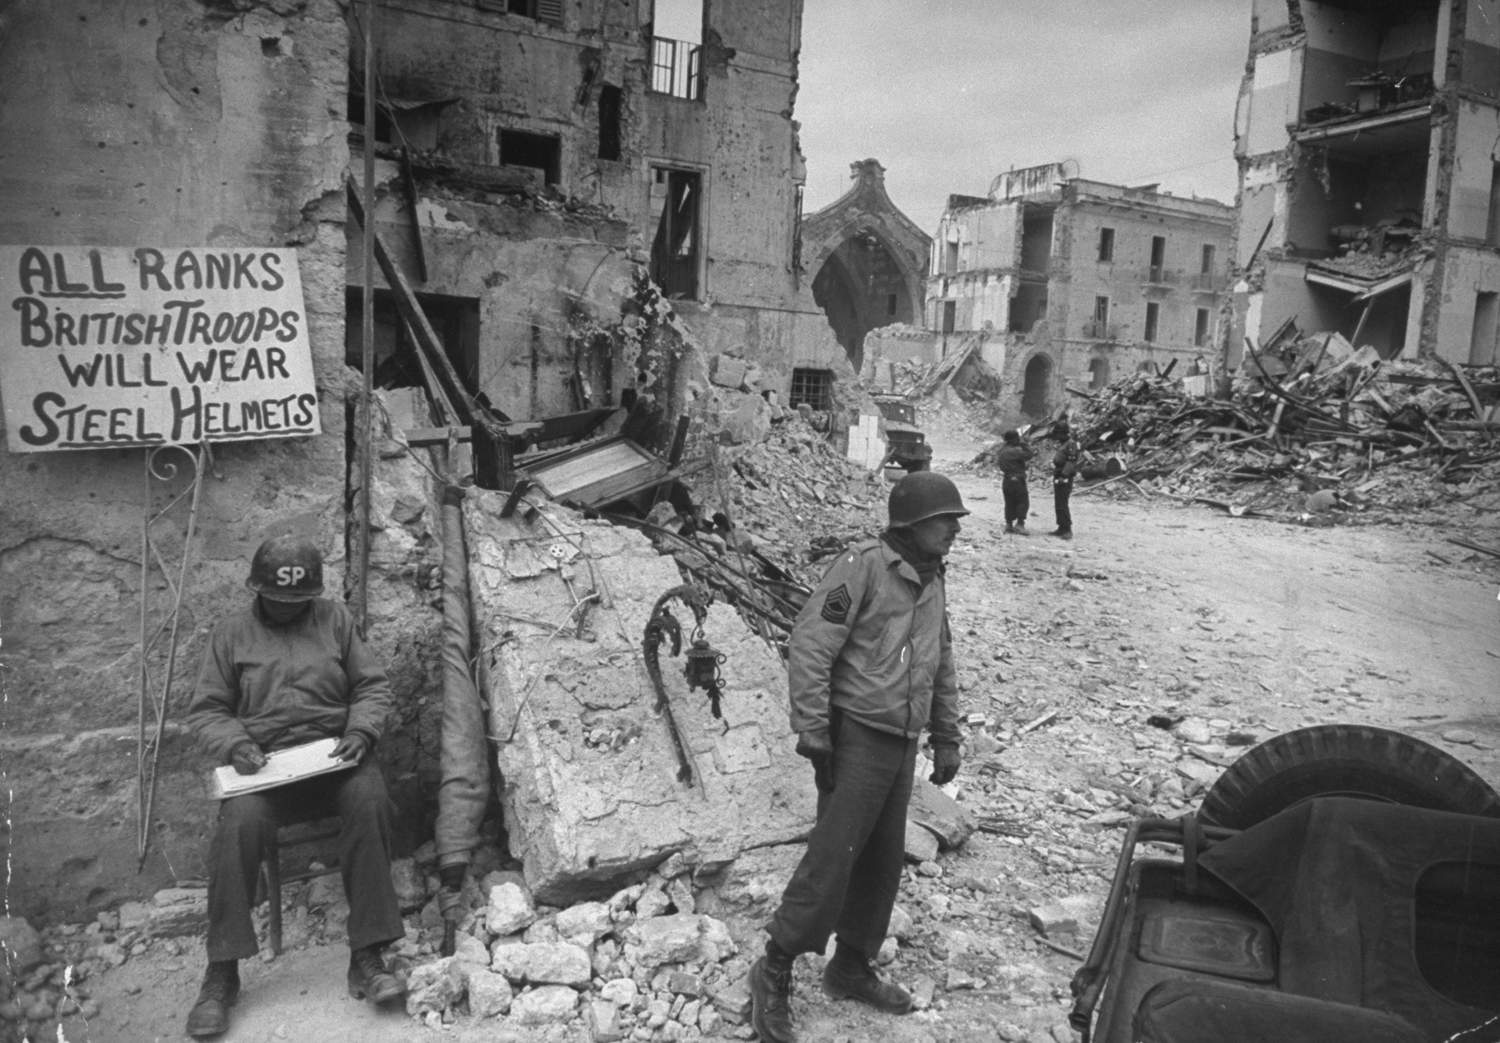 italy in world war ii Introduction world war ii was the mightiest struggle humankind has ever seen it killed more people, cost more money, damaged more property, affected more people, and caused more far-reaching changes in nearly every country than any other war in history.